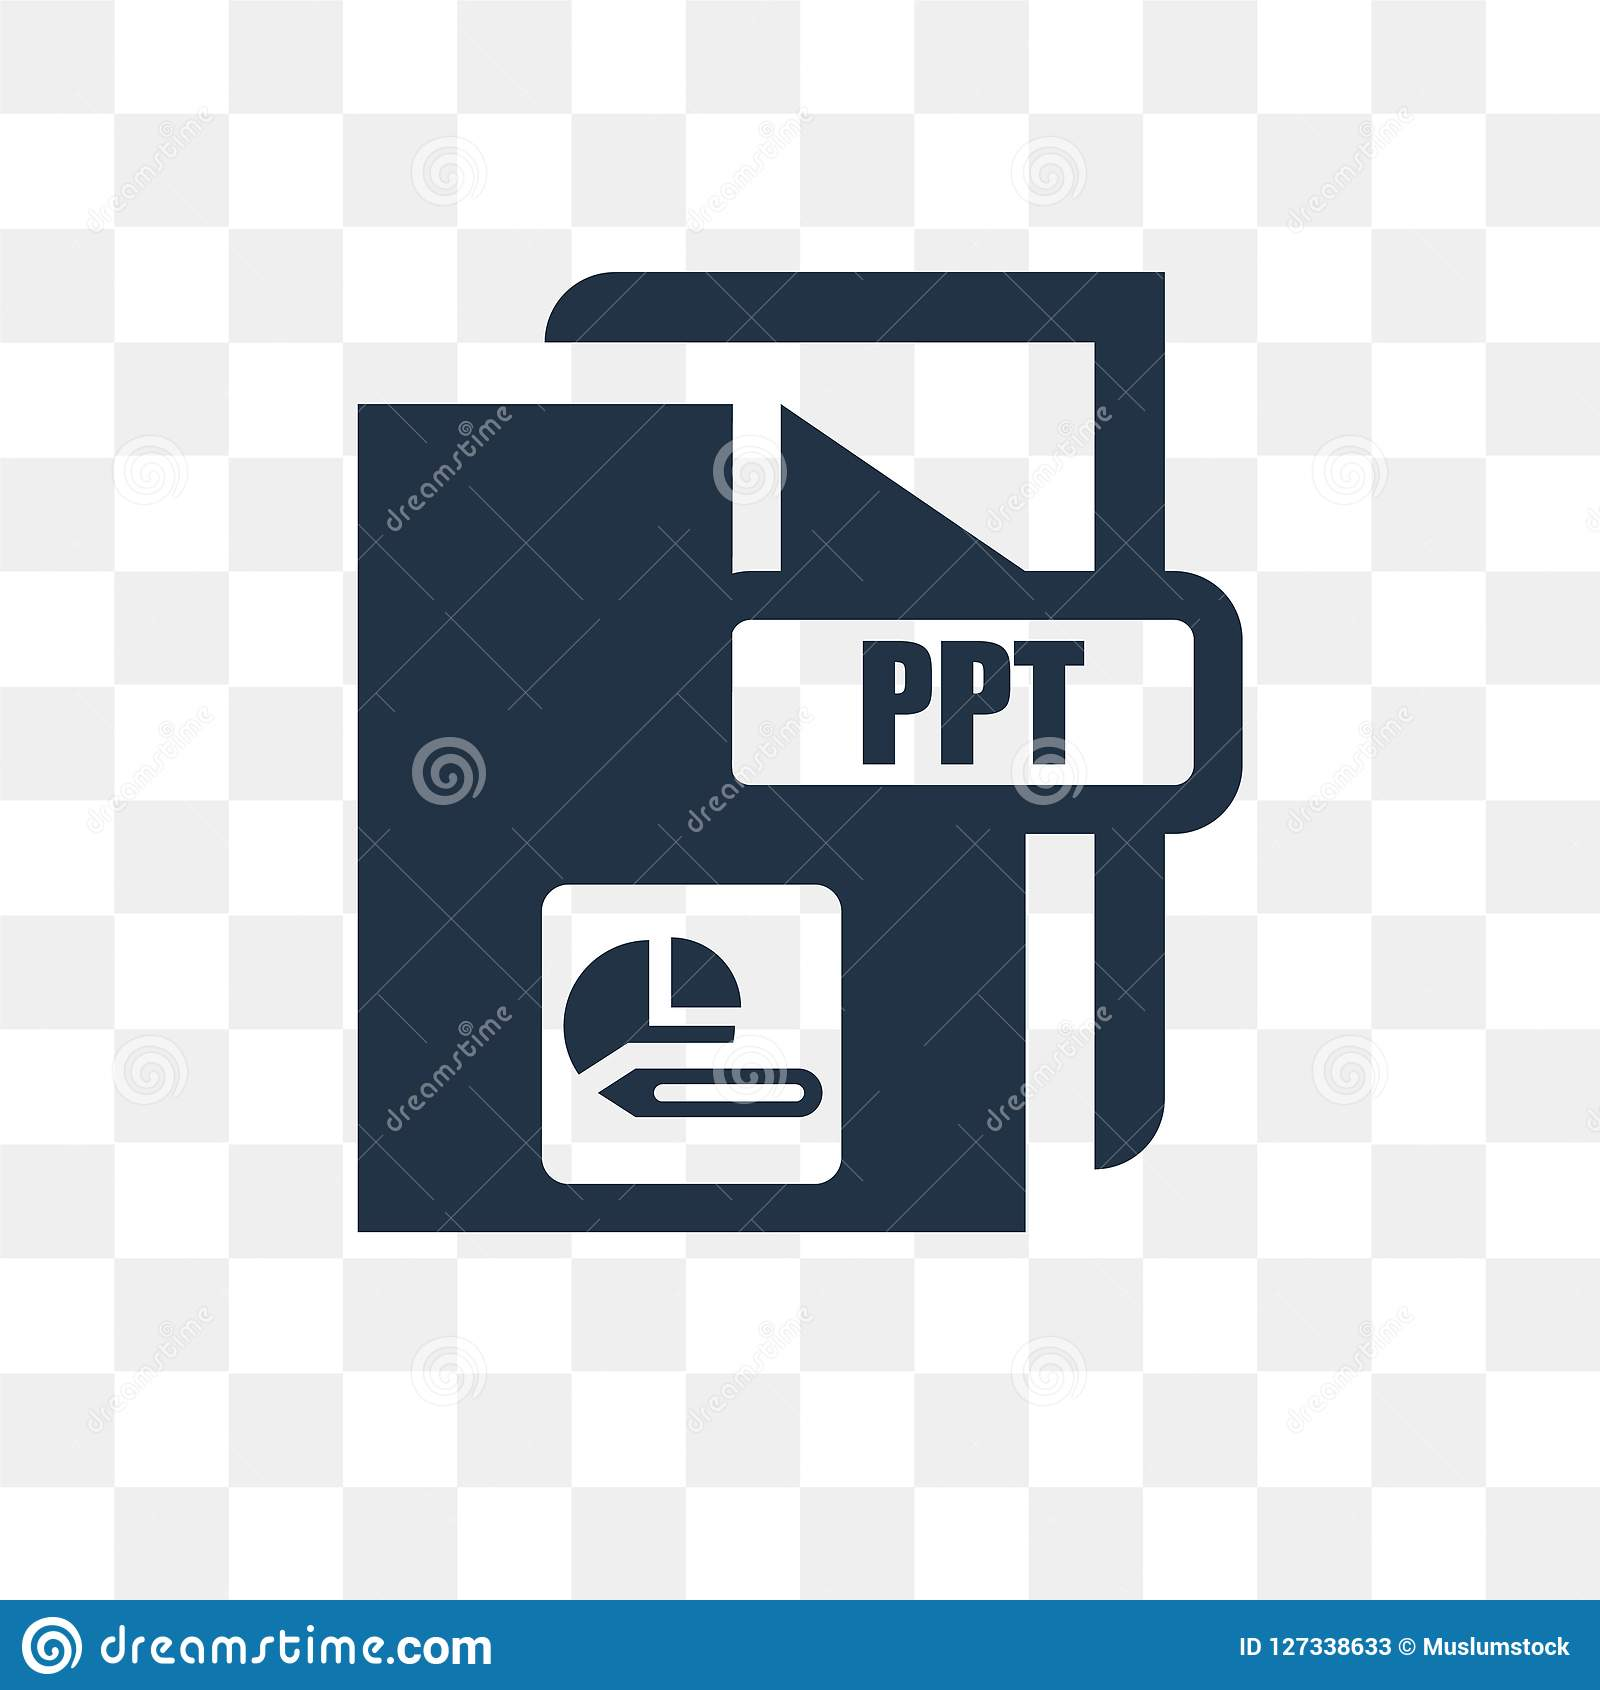 ppt vector icon isolated on transparent background ppt transpa